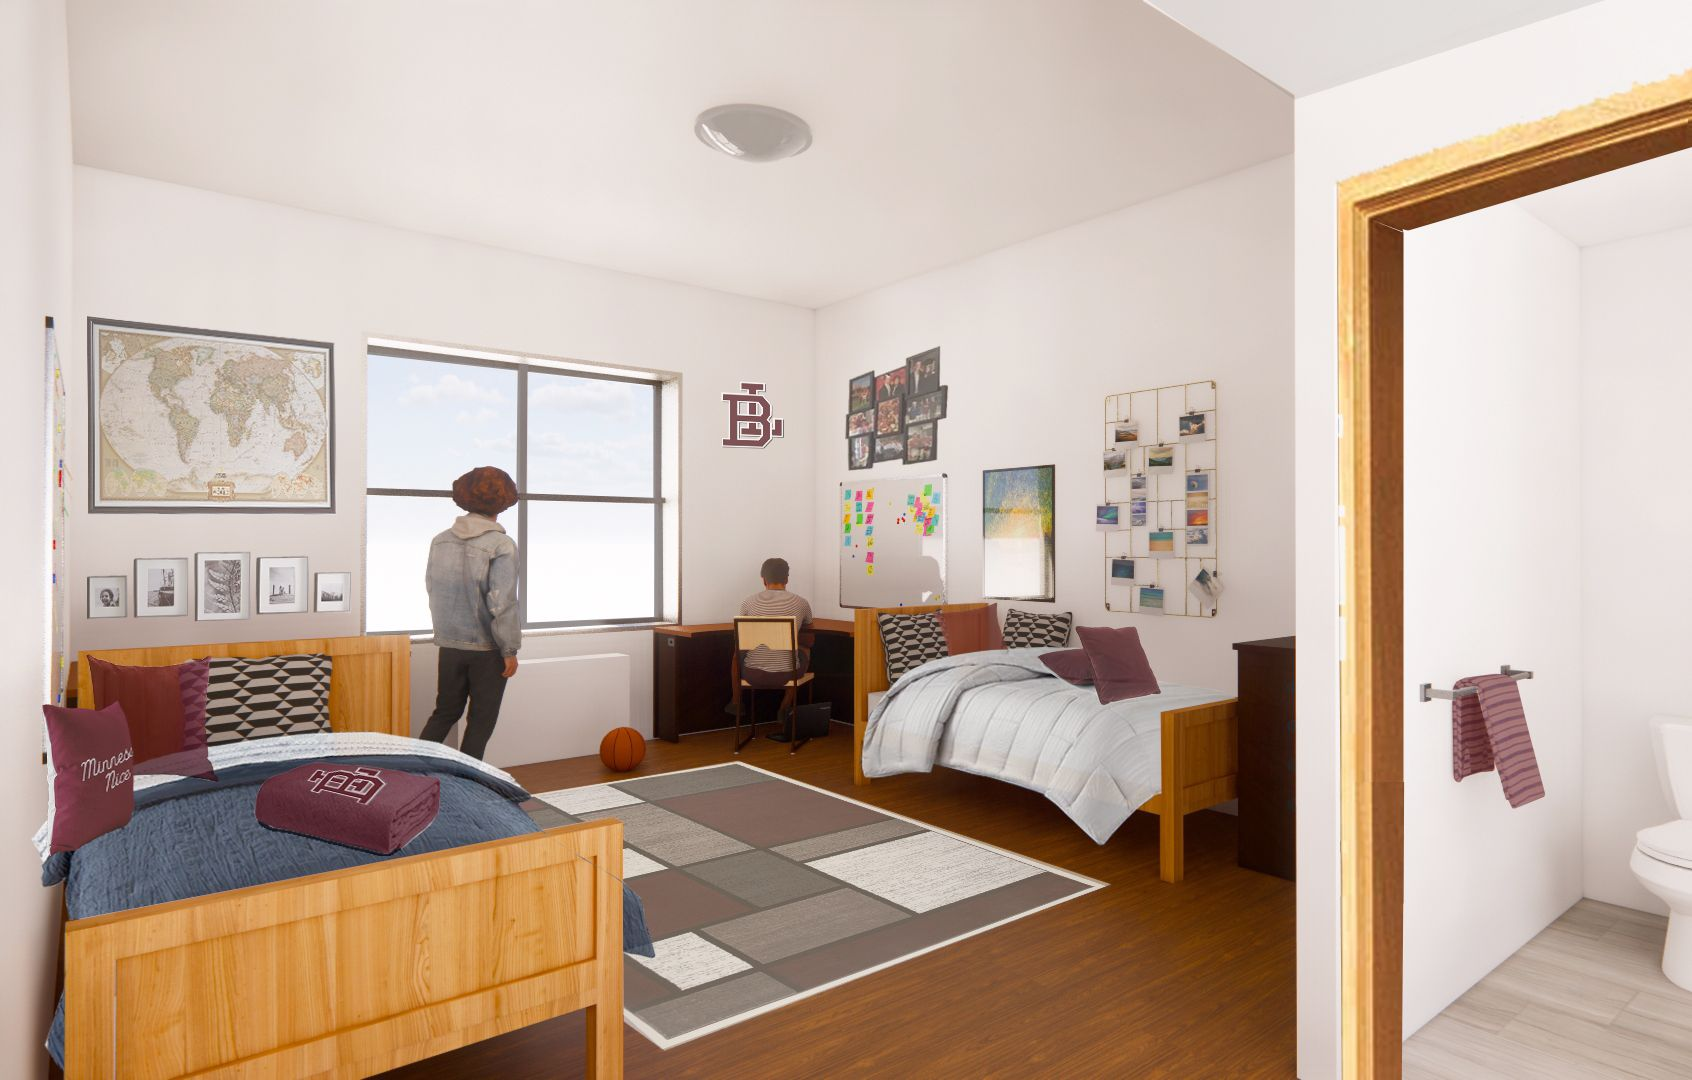 Each of the residence hall's twenty dormitory rooms will be sized at approximately 350 sq. ft.  with its own fully-equipped private bathroom.